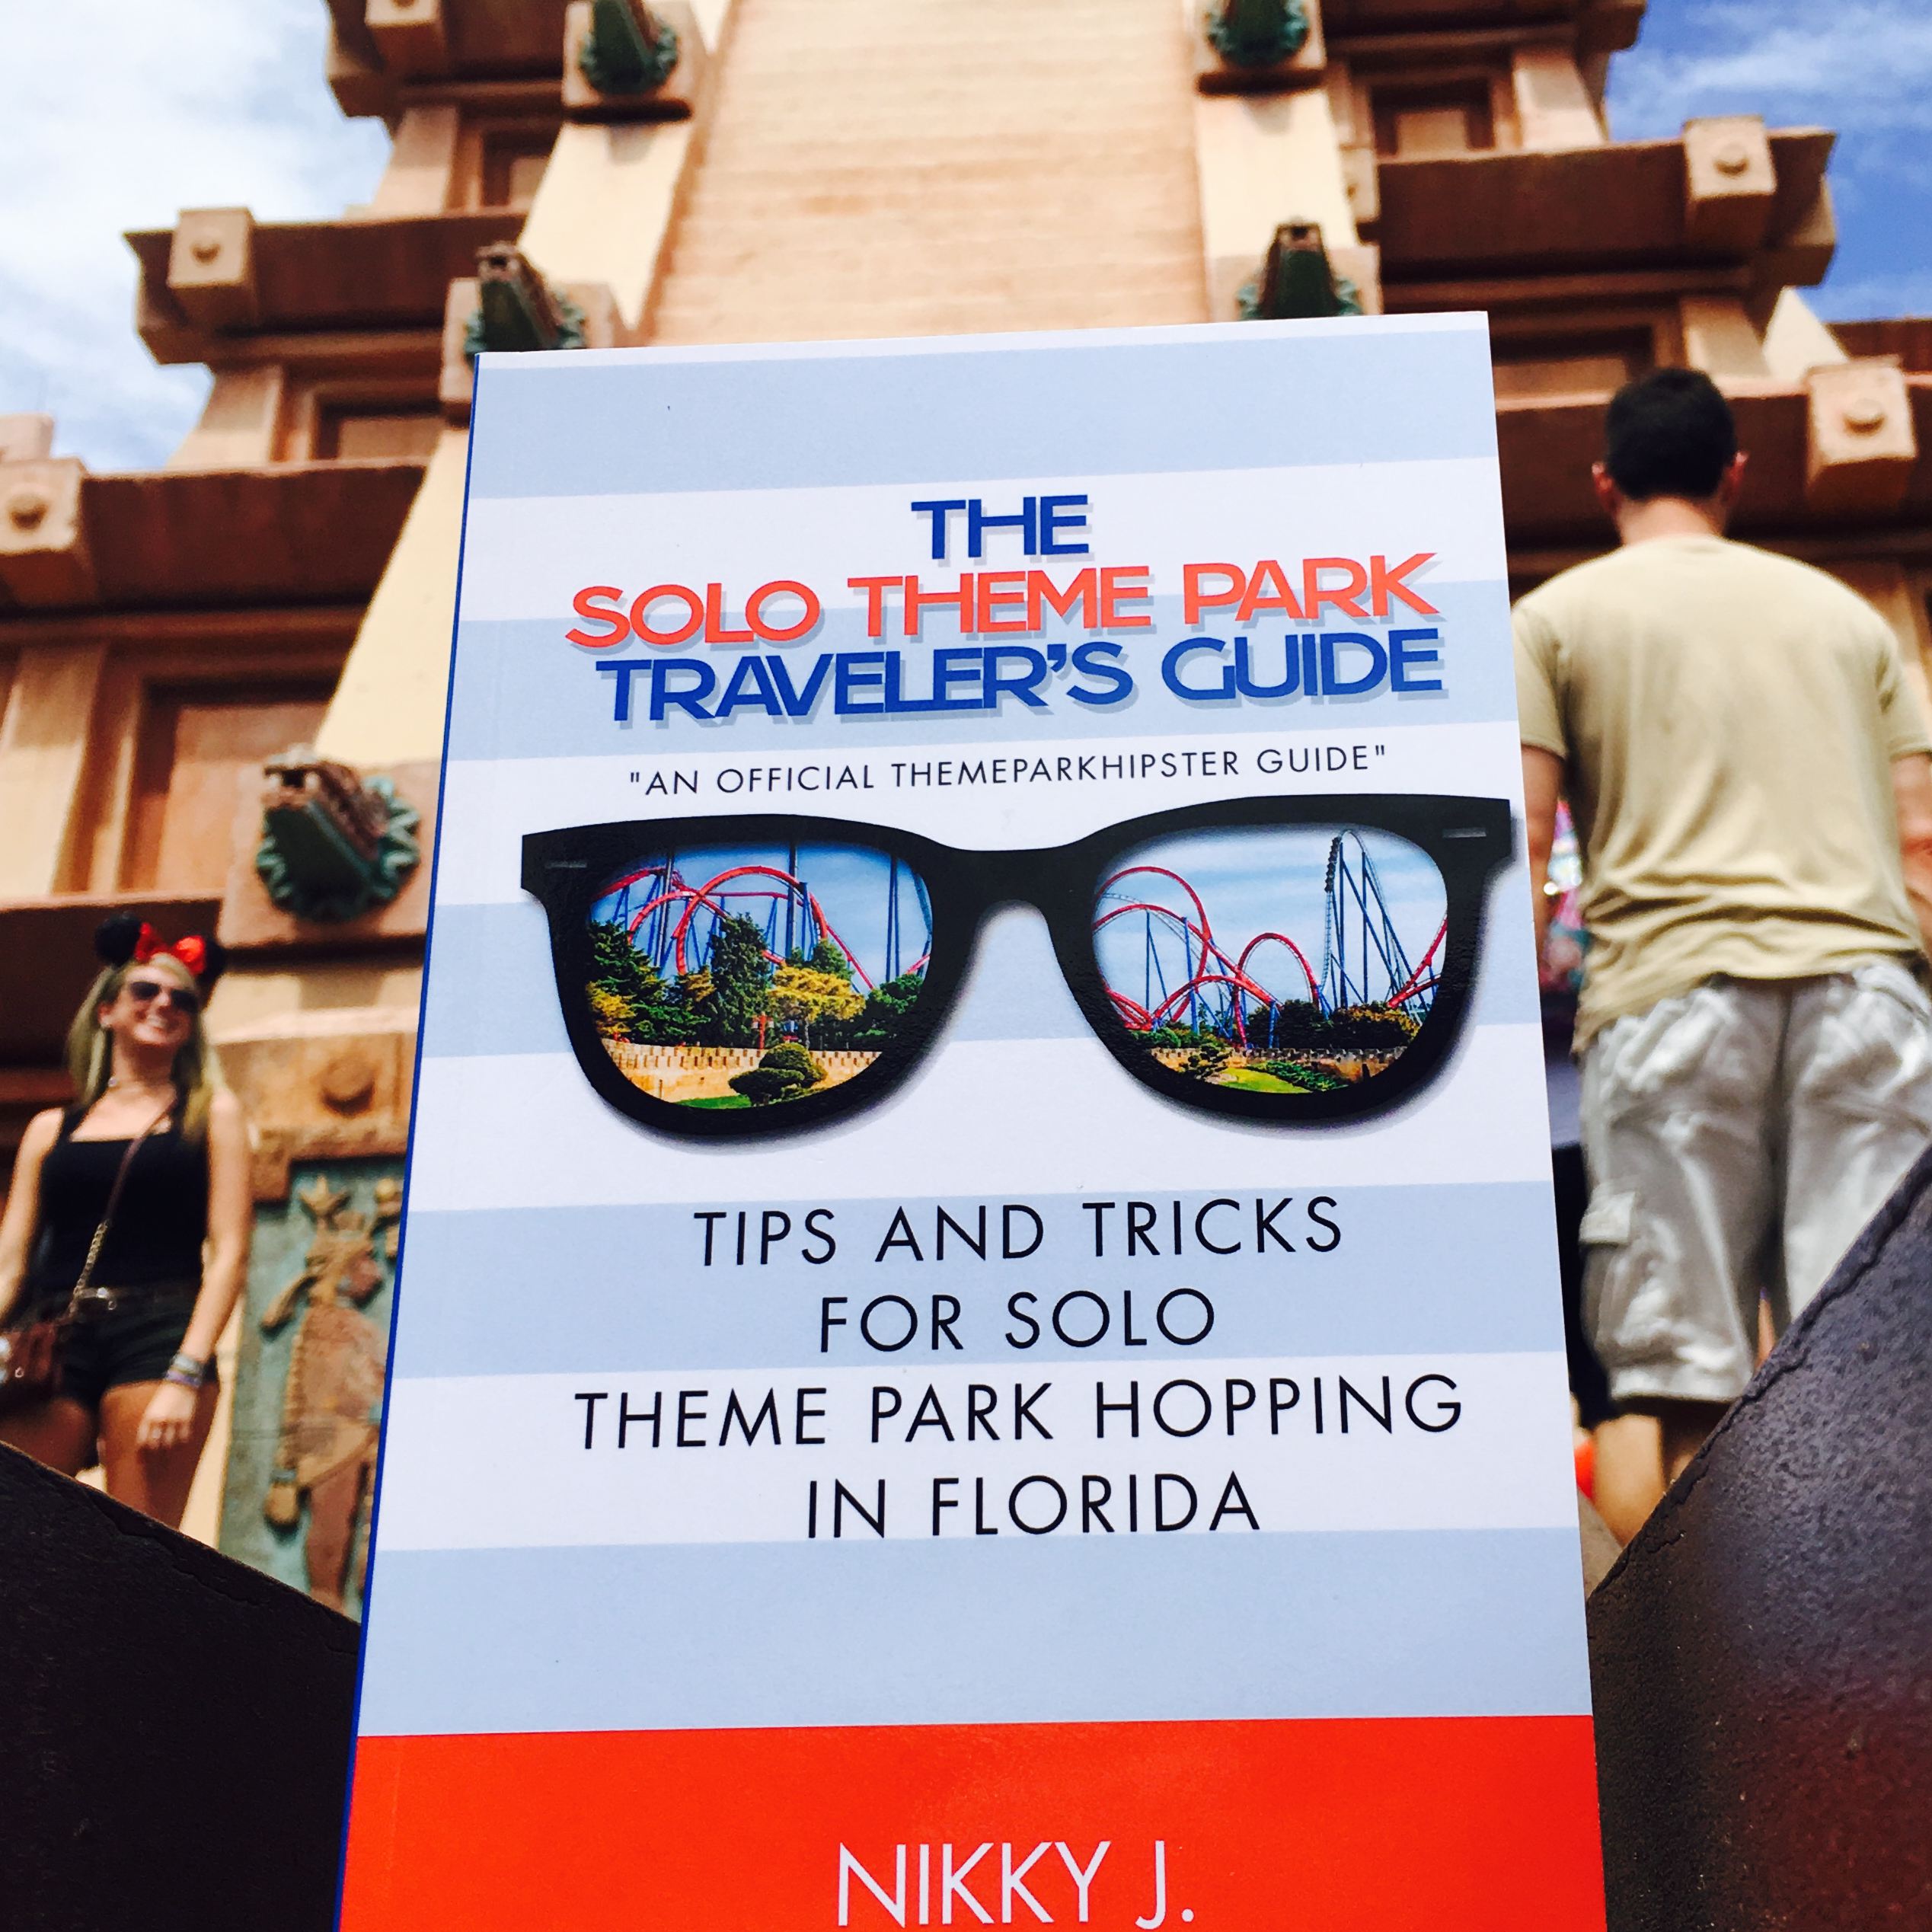 Solo Theme Park Traveler's Guide